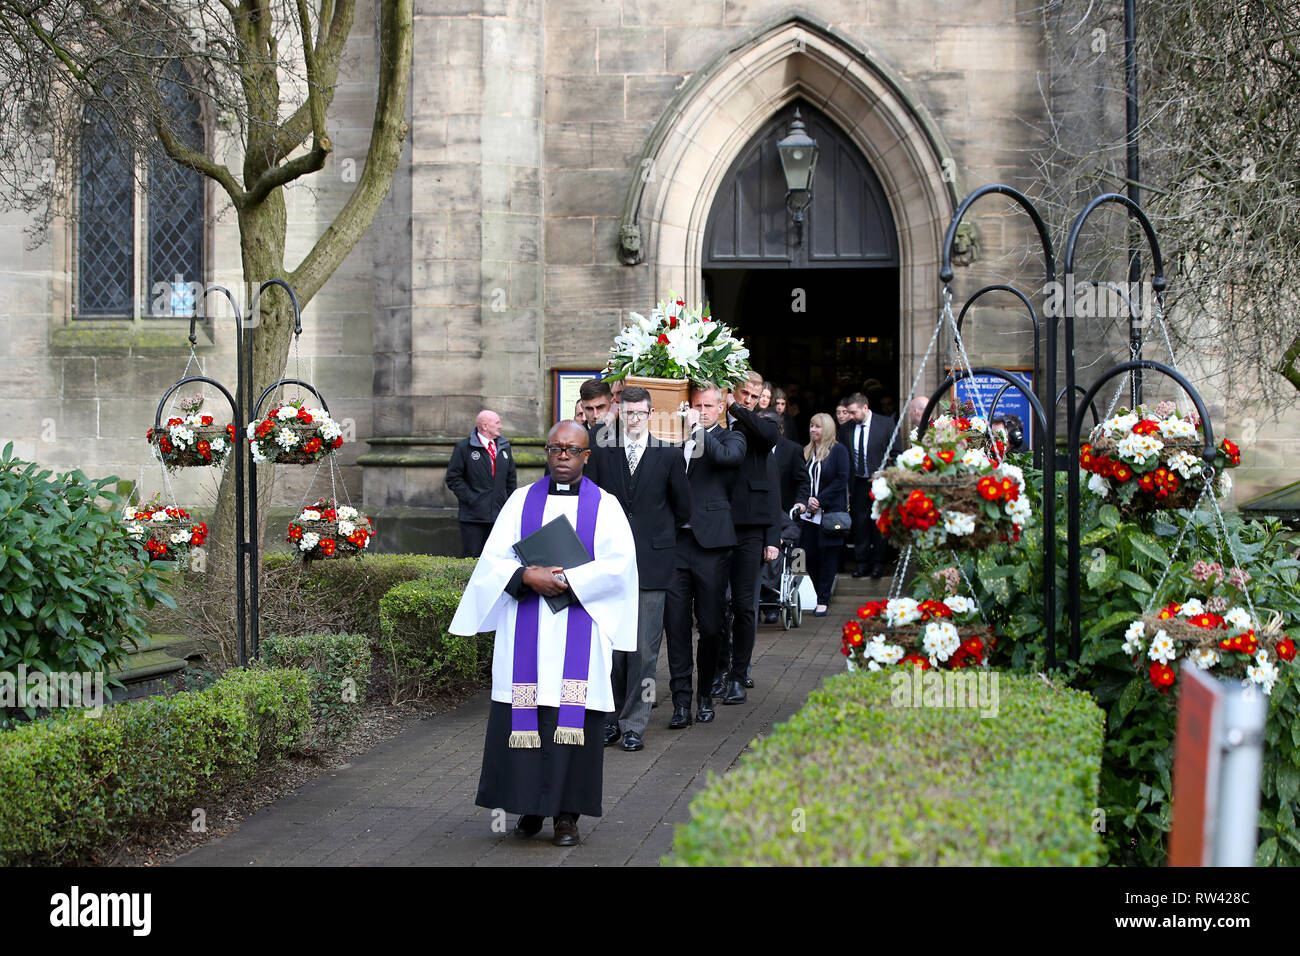 Chesterfield goalkeeper Joe Anyon (left) and Leicester City goalkeeper Kasper Schmeichel carry the coffin during the funeral service for Gordon Banks at Stoke Minster. - Stock Image